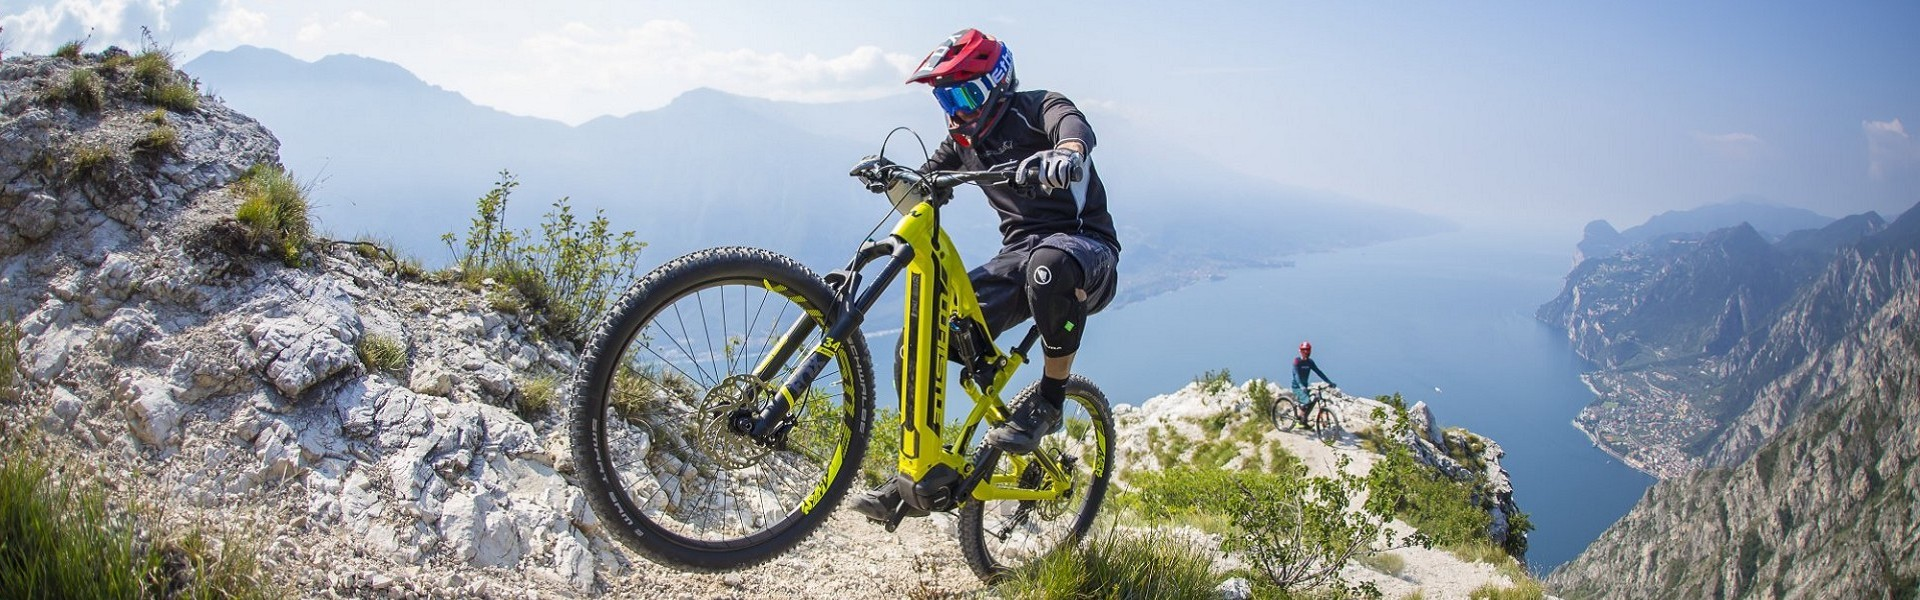 bike rental in france | bicycle tour in cinque terre | best mountain bike trails in italy